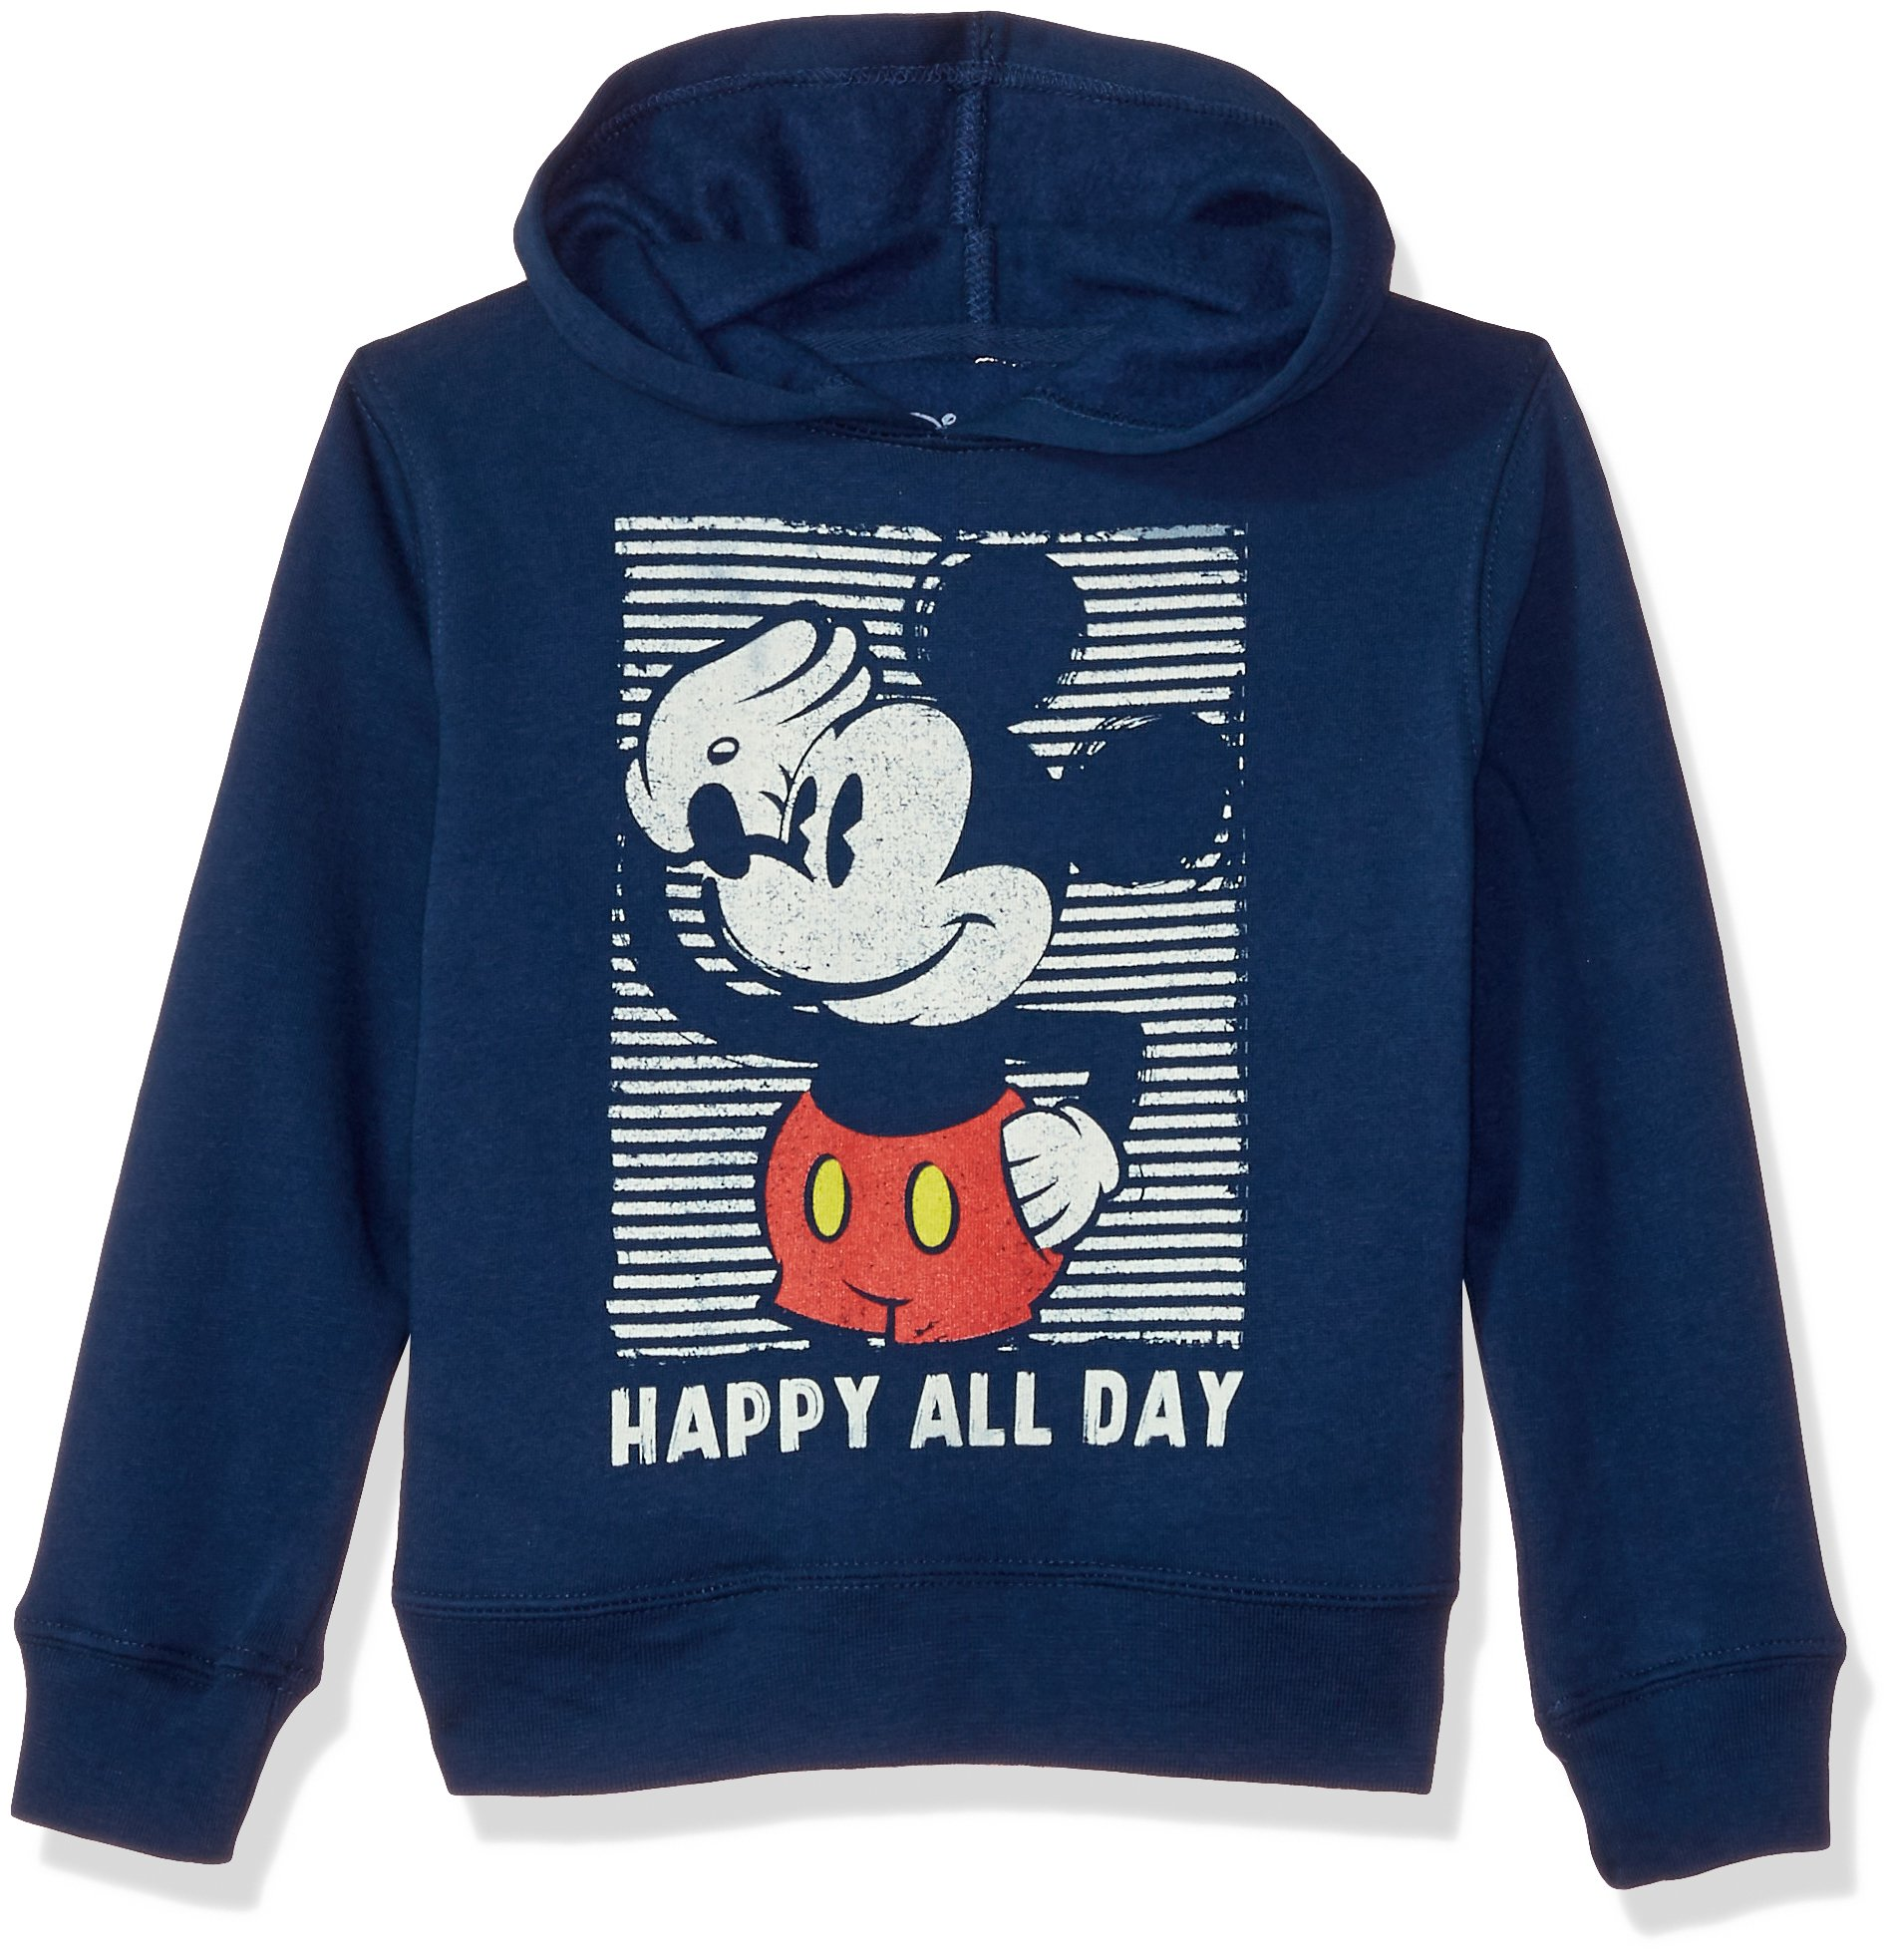 Disney Boys' Toddler Mickey Mouse Pullover Fleece Happy, 4T by Disney (Image #1)